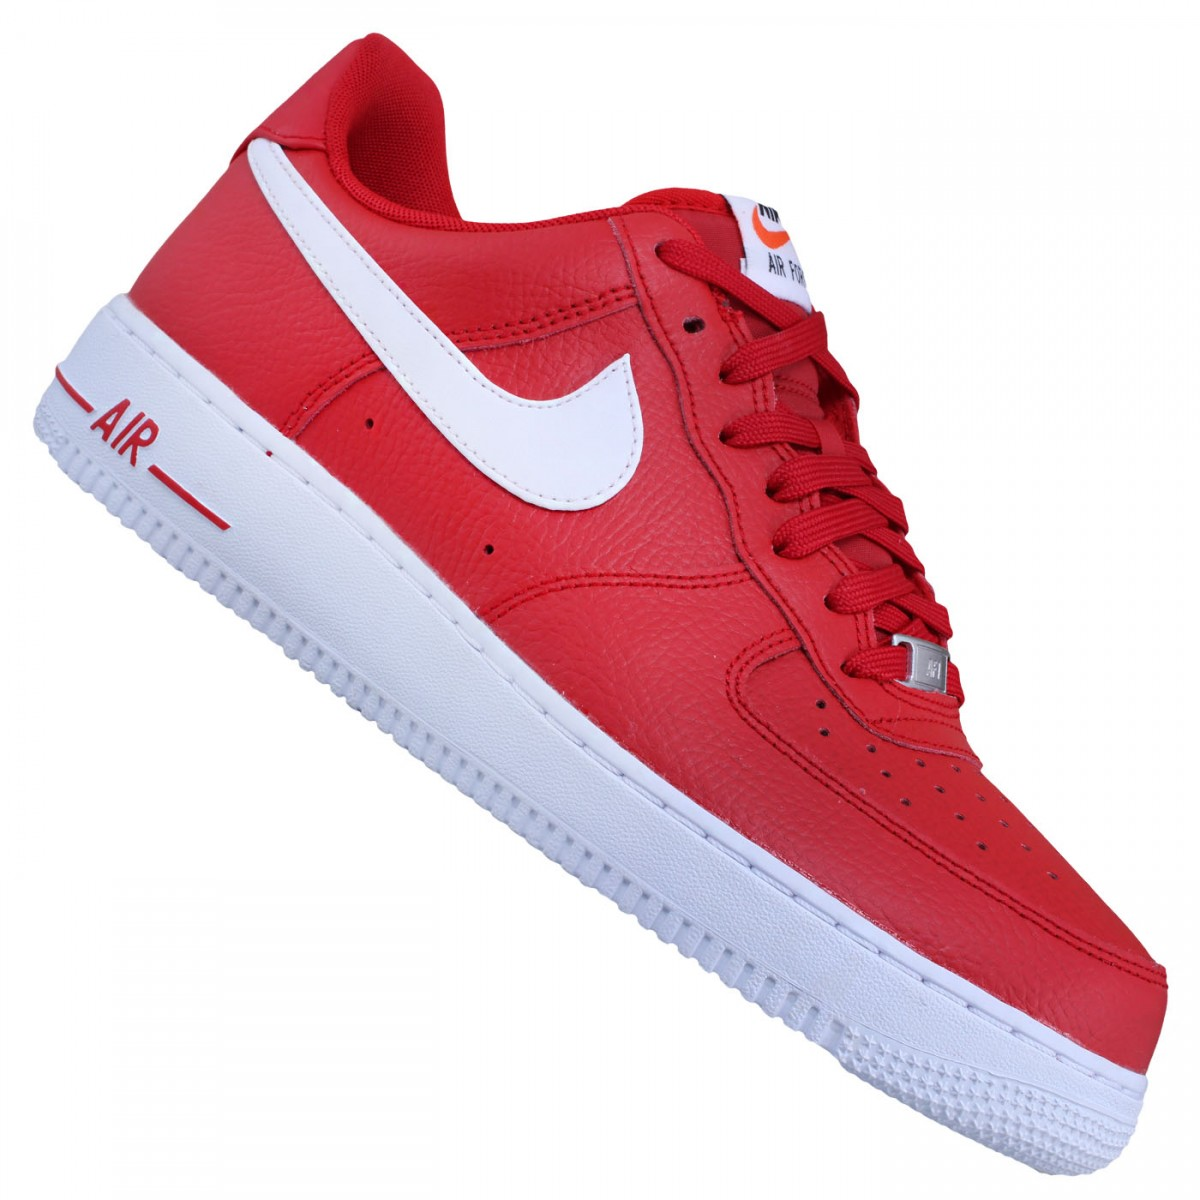 5dc8b8f32df Tênis Nike Air Force 1 - Masculino